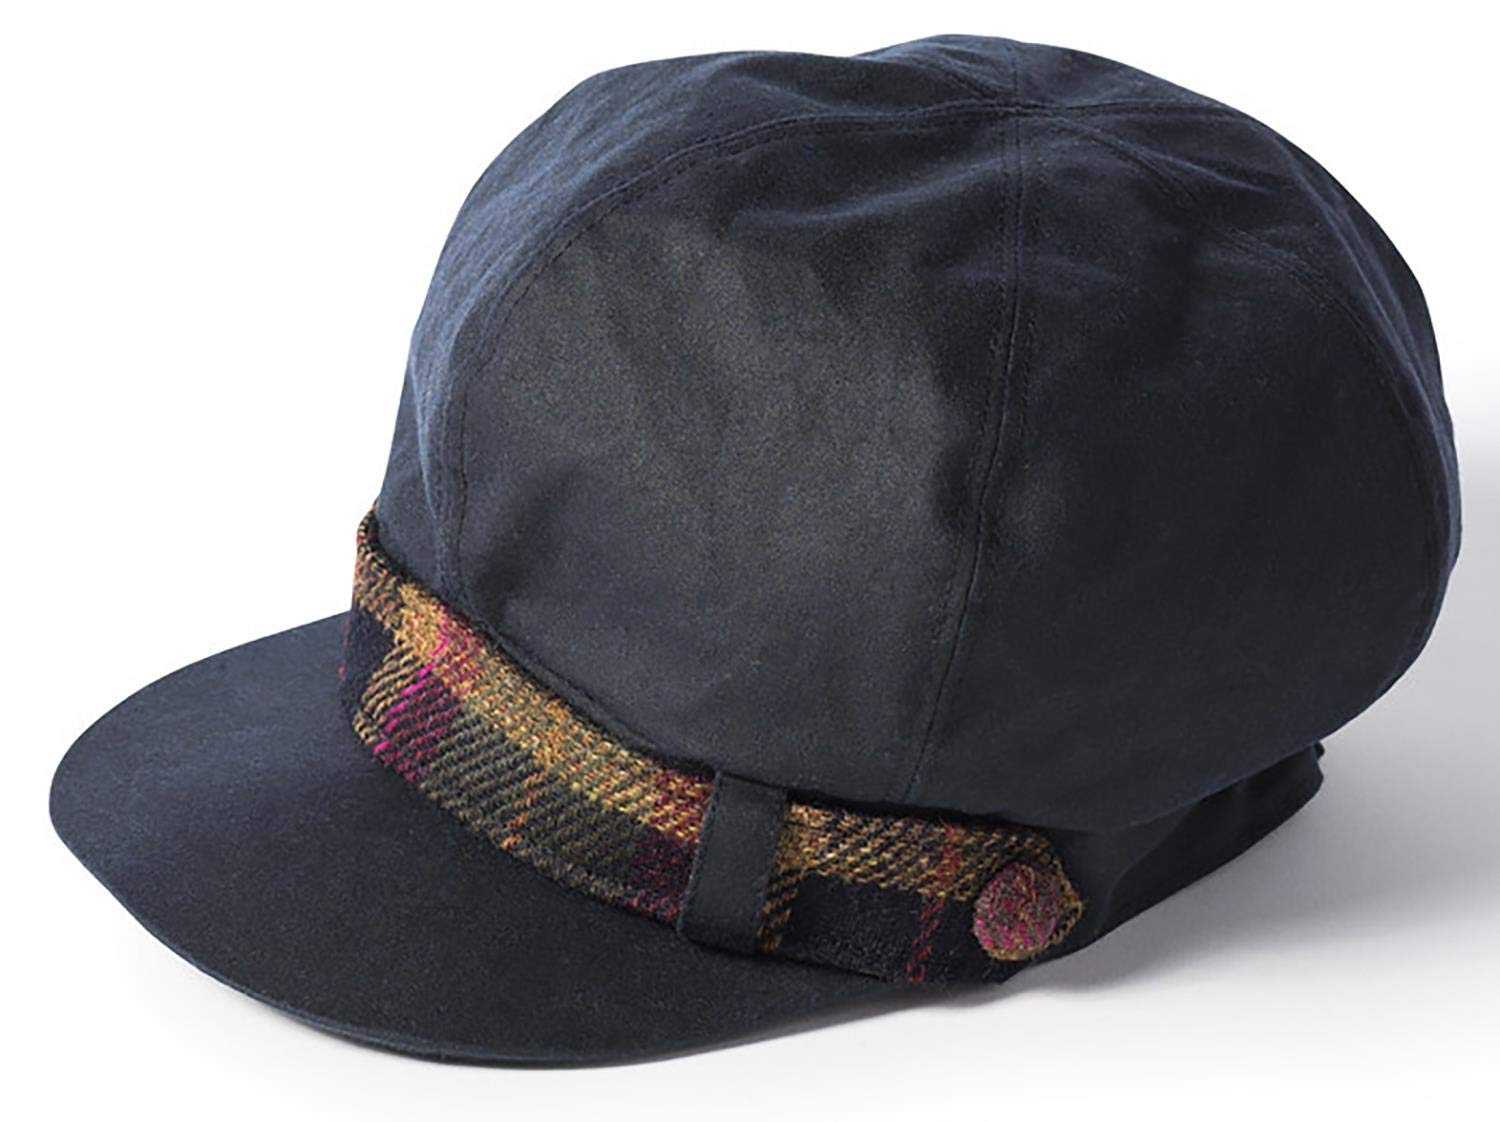 The Hat Shop Failsworth Ladies Waxed Bakerboy Cap - Navy by The Hat Shop